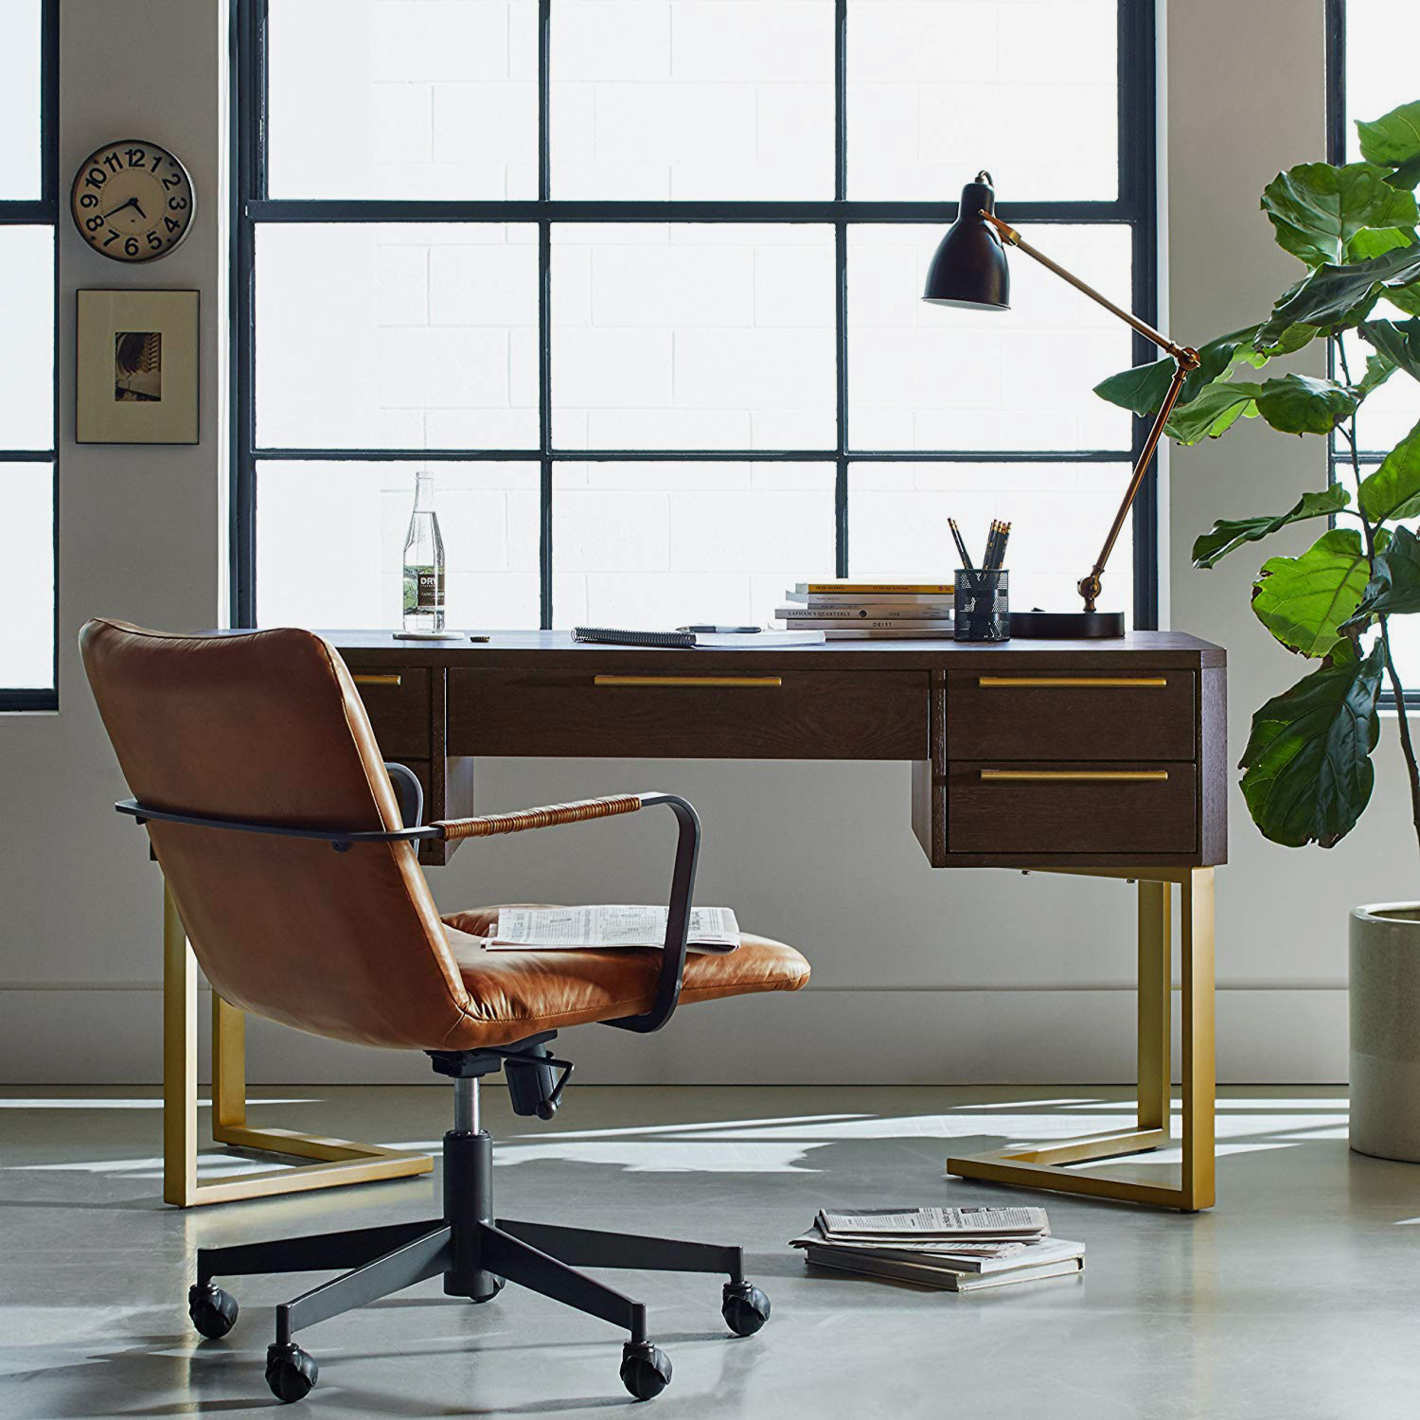 Rivet Mid-Century Leather Three-Panel Chair on Wheels